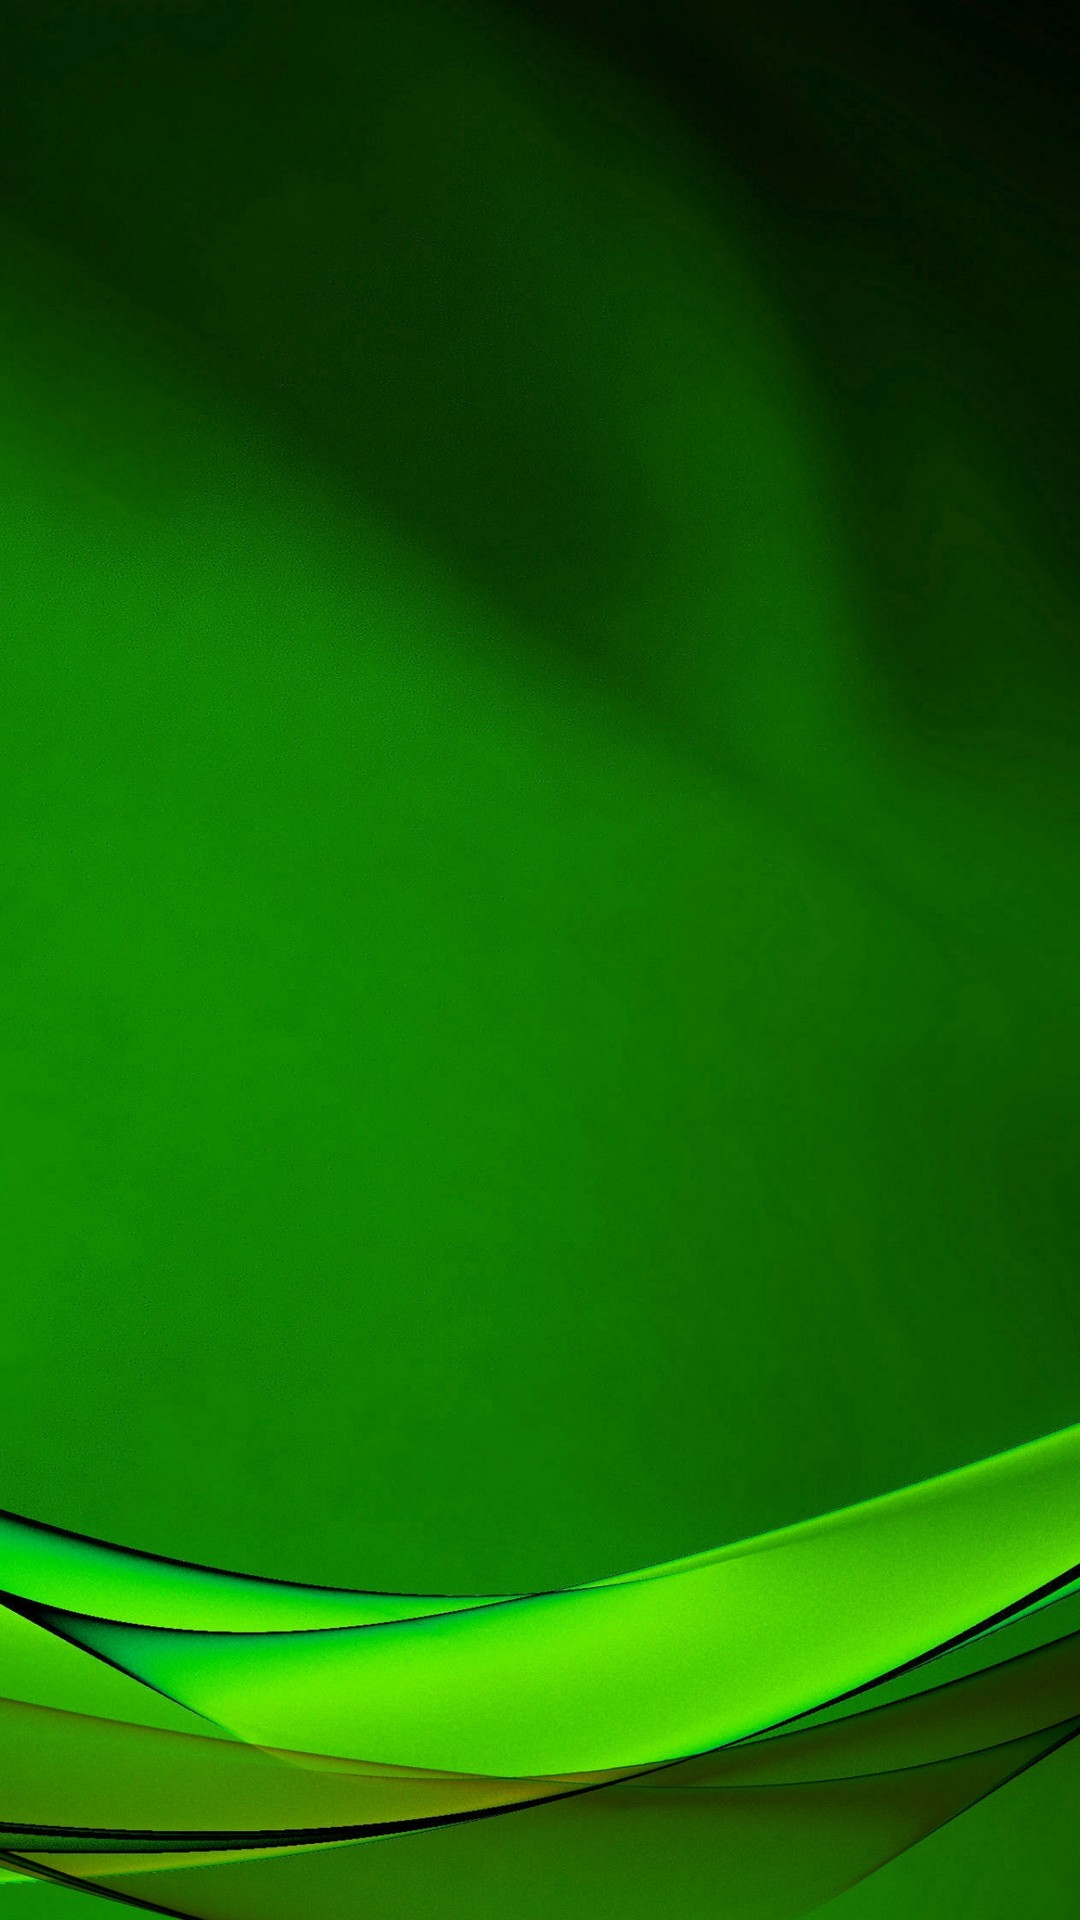 Green Mobile Wallpaper Hd With Image Resolution Pixel - Green Wallpapers For Android - HD Wallpaper